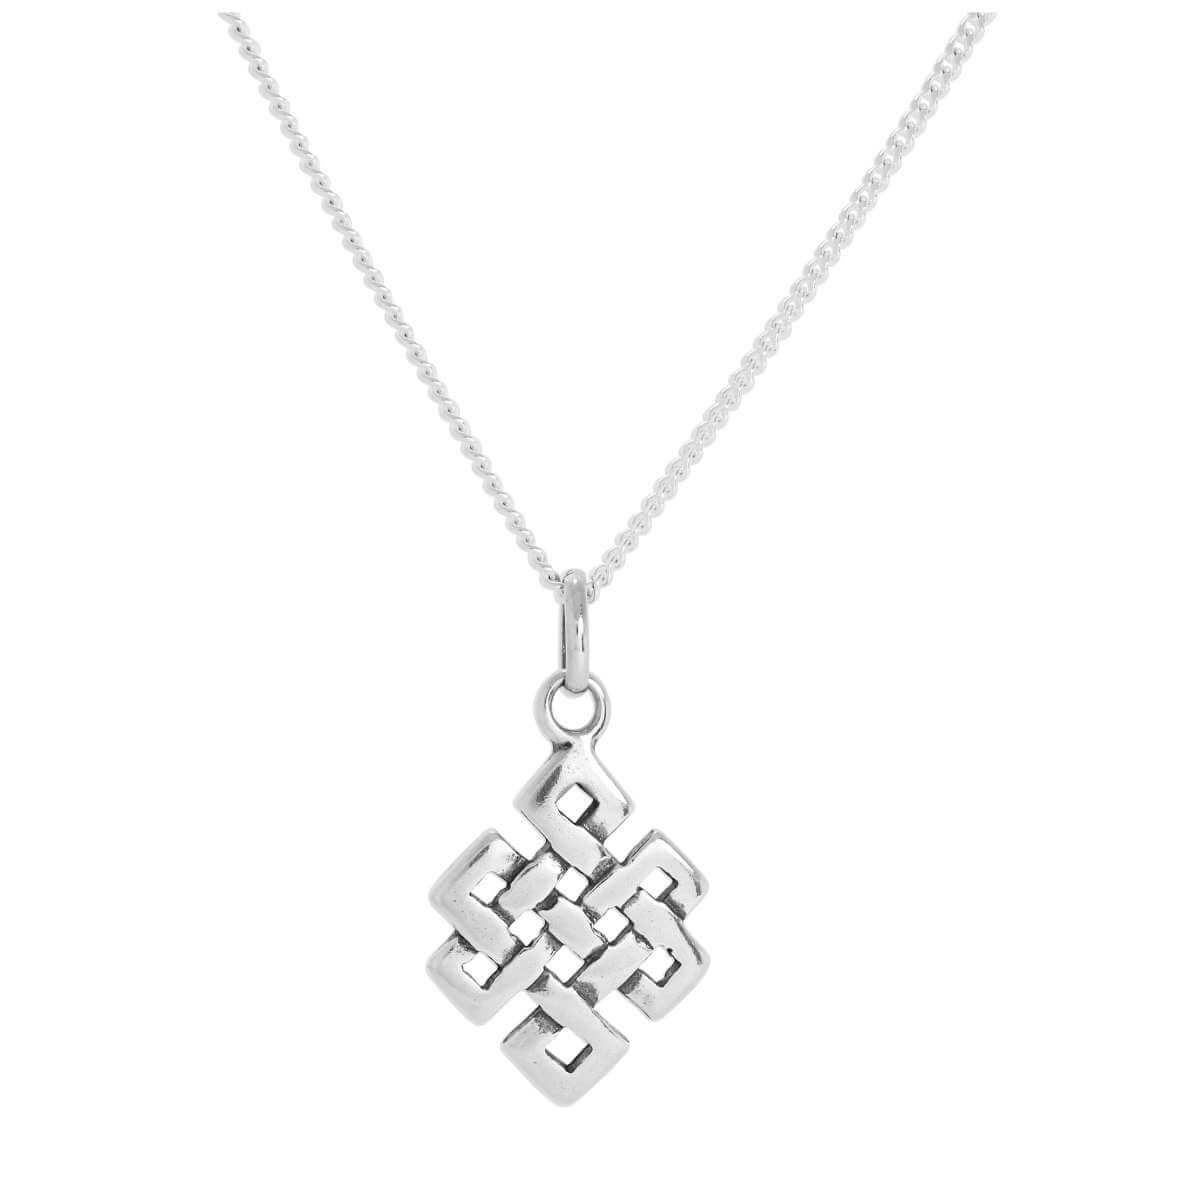 Sterling Silver Celtic Knot Pendant Necklace 16 - 24 Inches